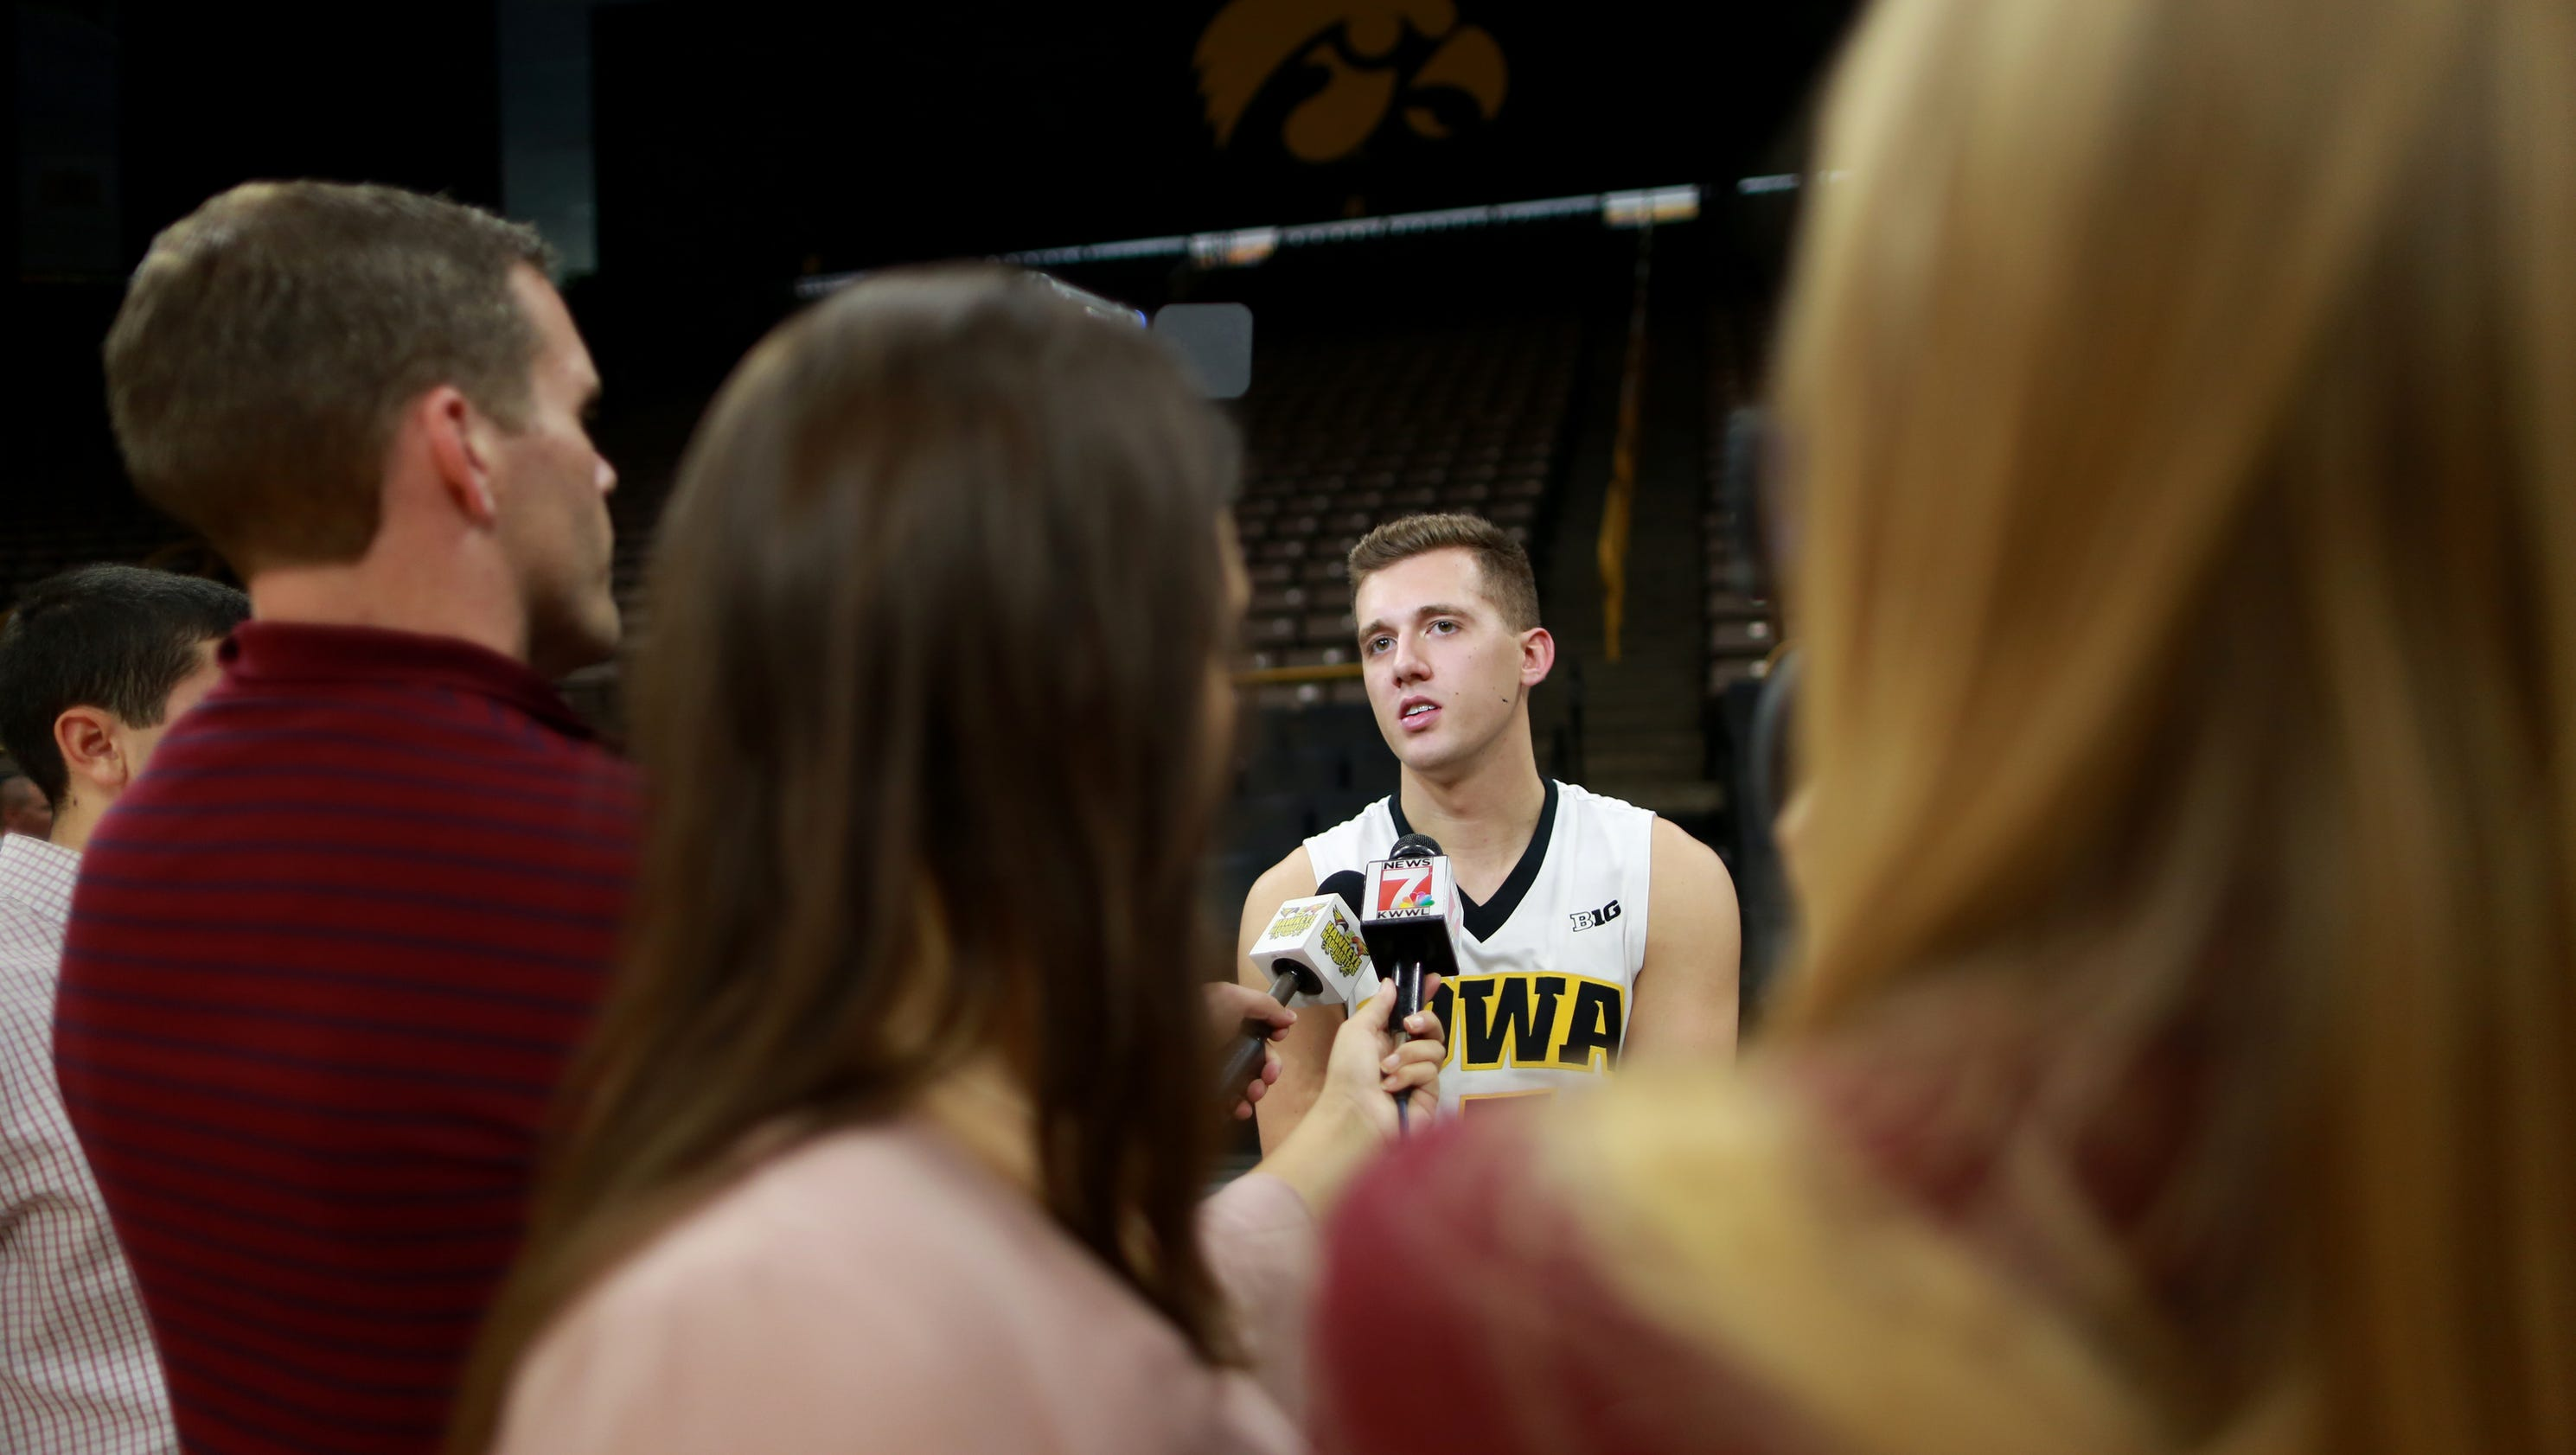 636437714427122934-171016-01-iowa-mens-basketball-media-day-ds